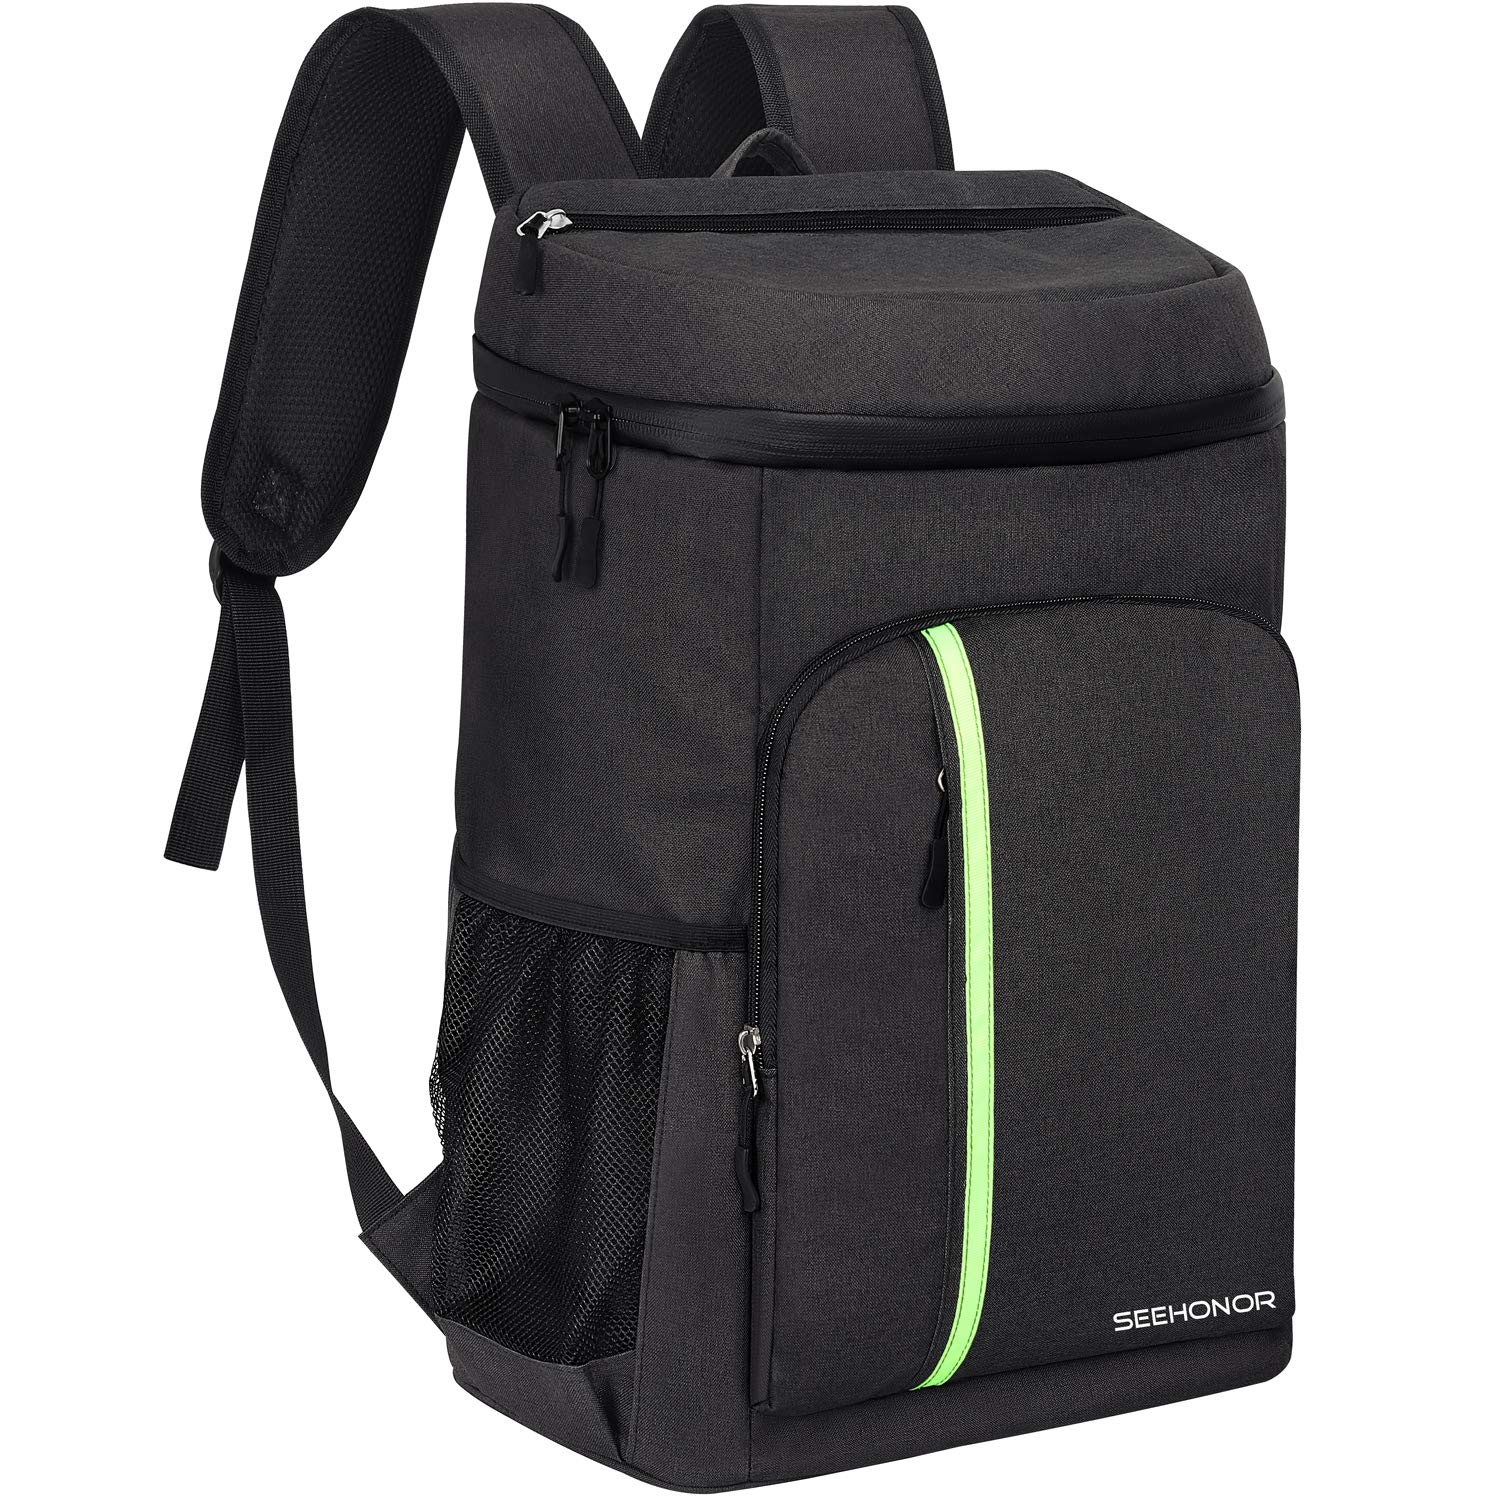 SEEHONOR Insulated Backpack Leakproof Lightweight